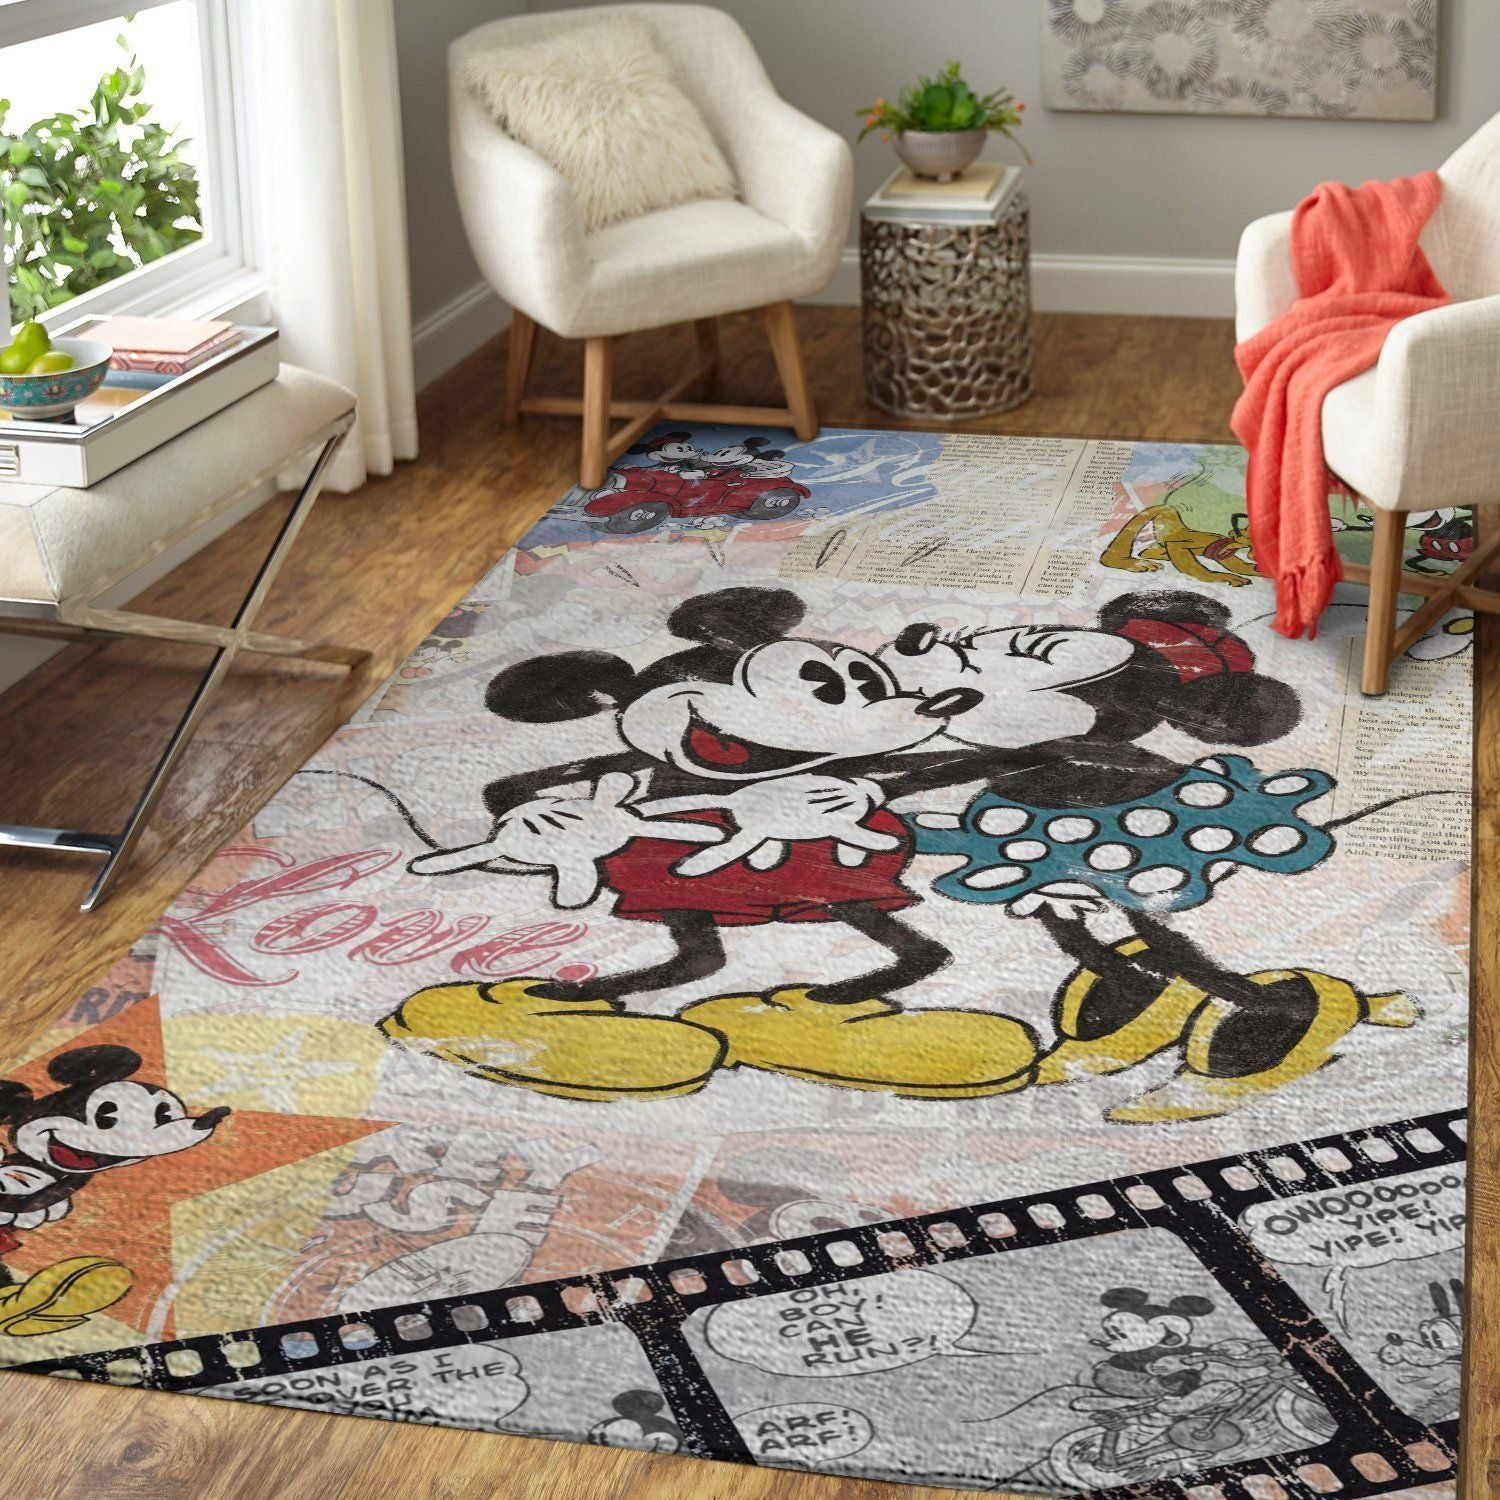 Mickey Mouse Area Rug, Disney Rugs Floor Decor RB7A8E7E4680